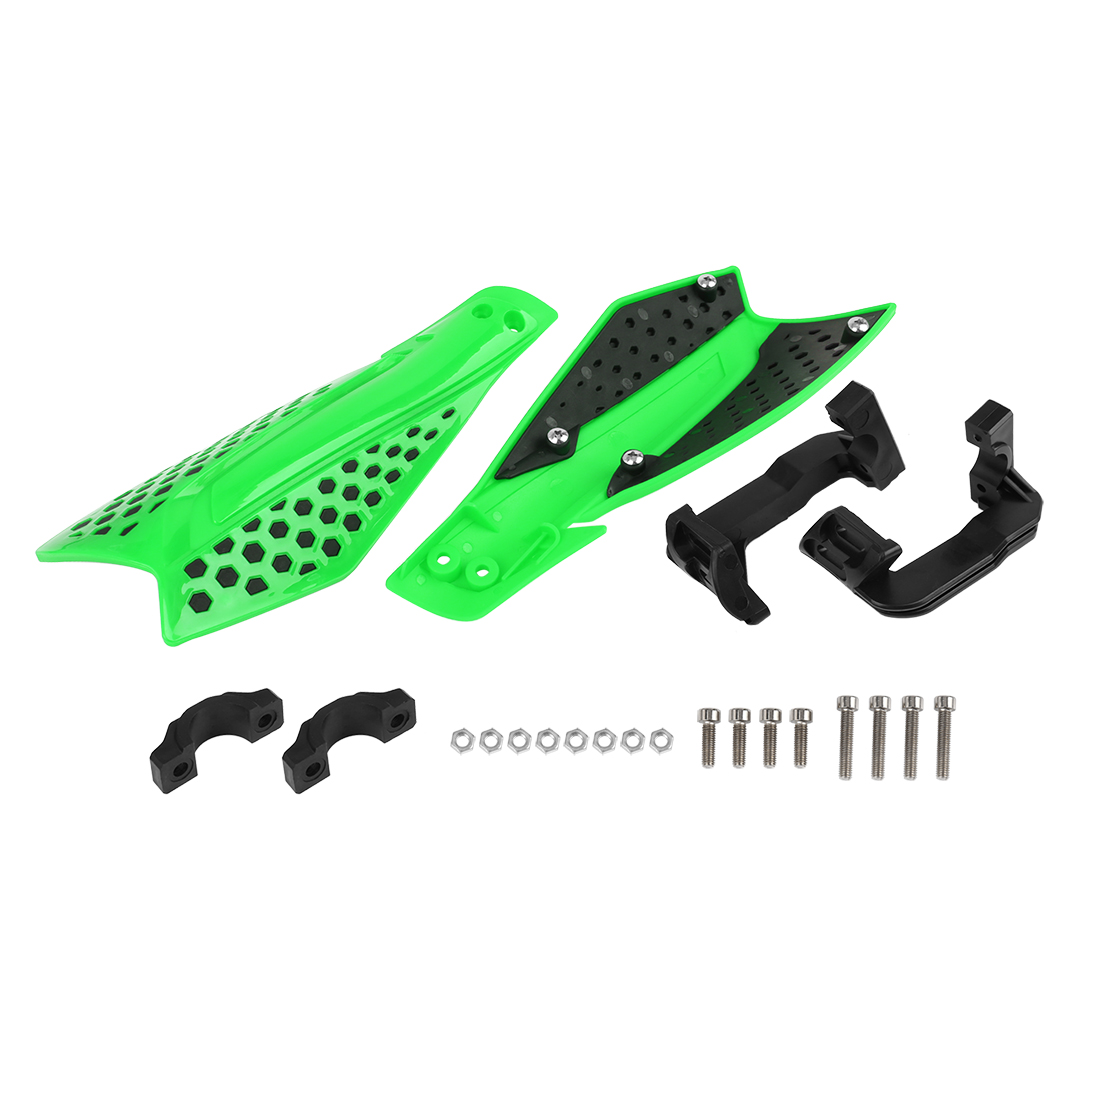 Green Black Universal Motorcycles 22mm Hand Guards Handbar Protector Set